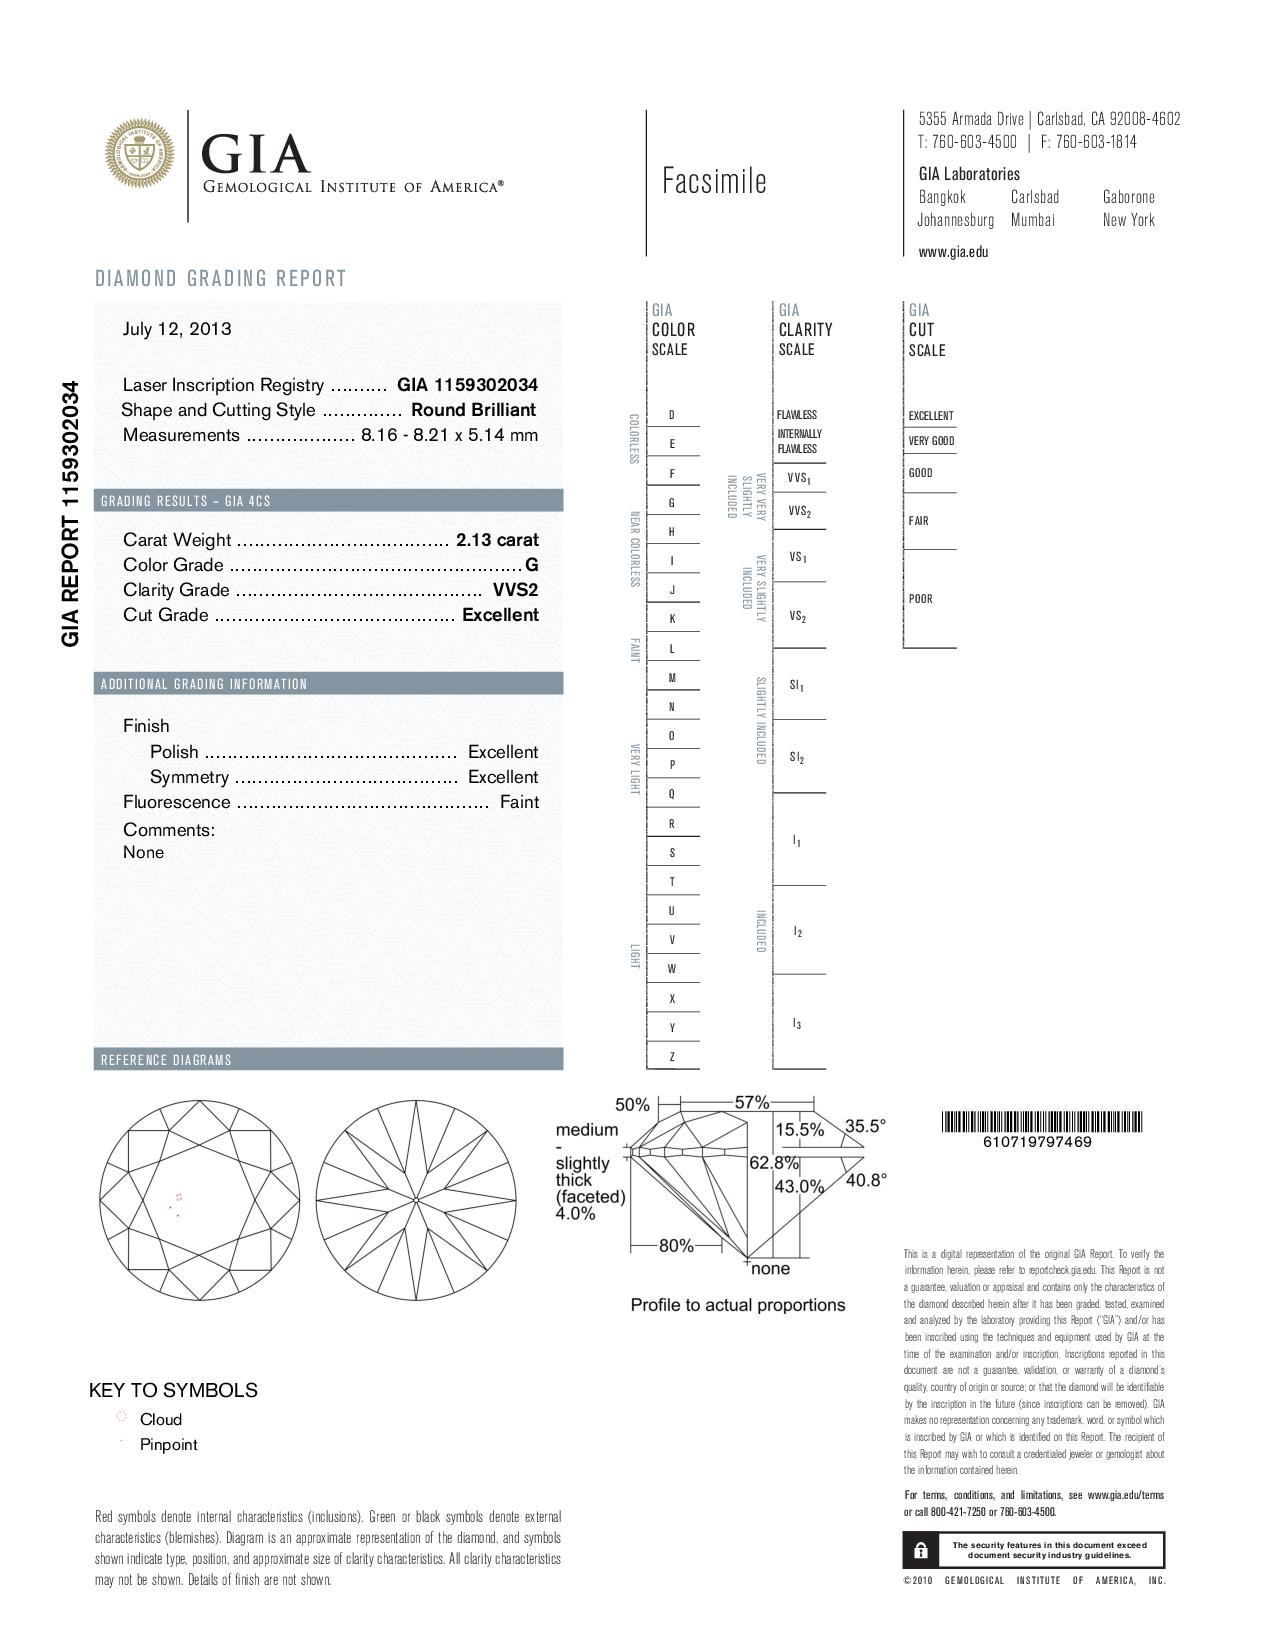 This is a 2.13 carat round shape, G color, VVS2 clarity natural diamond accompanied by a GIA grading report.